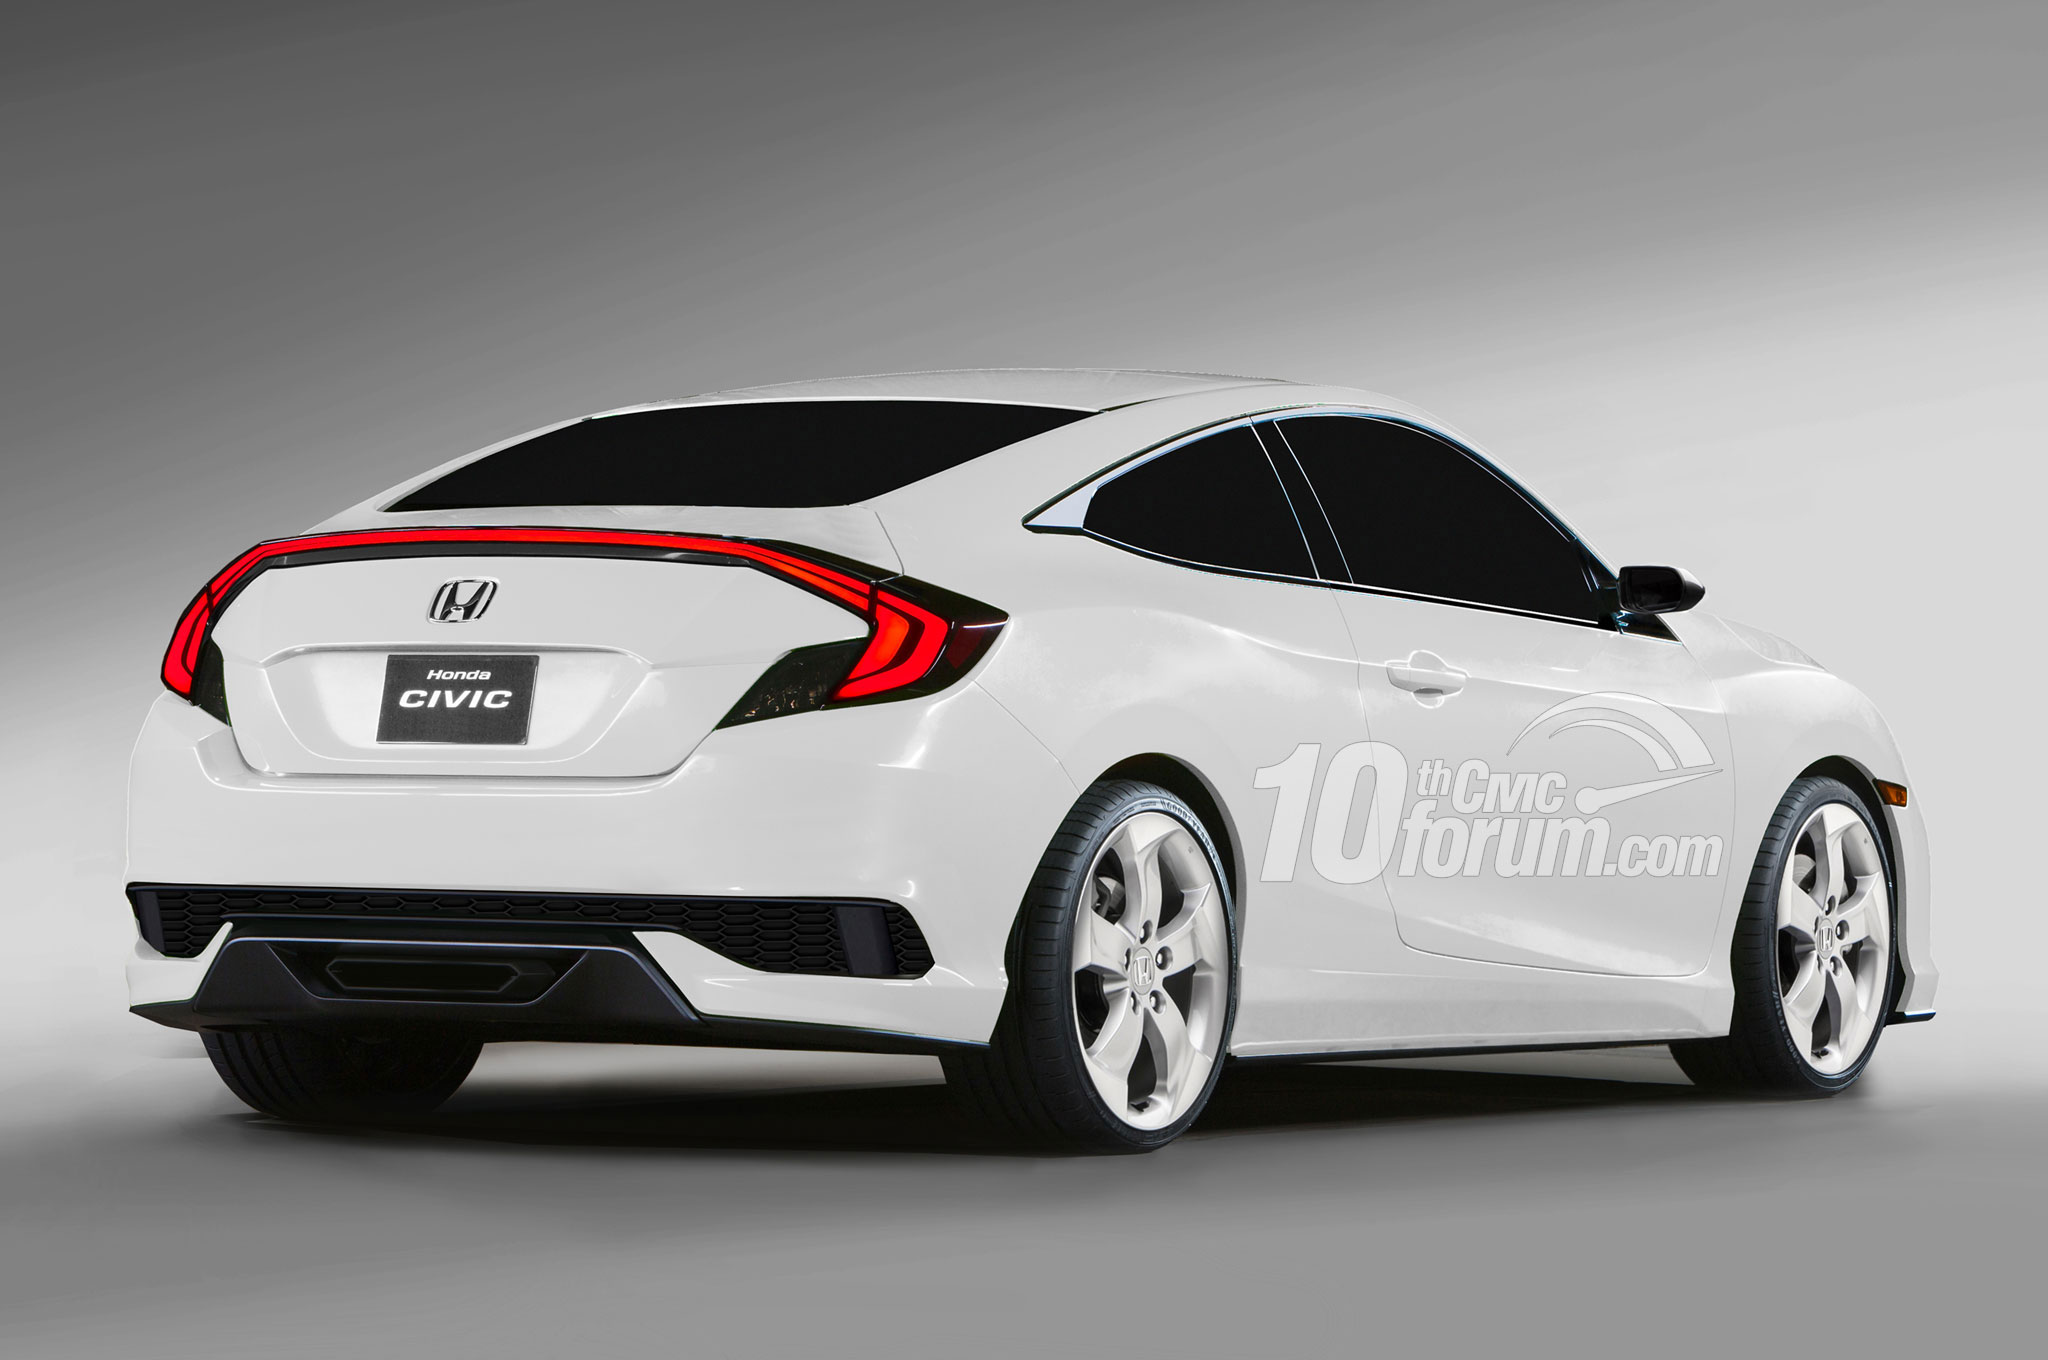 2016 Honda Civic Renderings 1